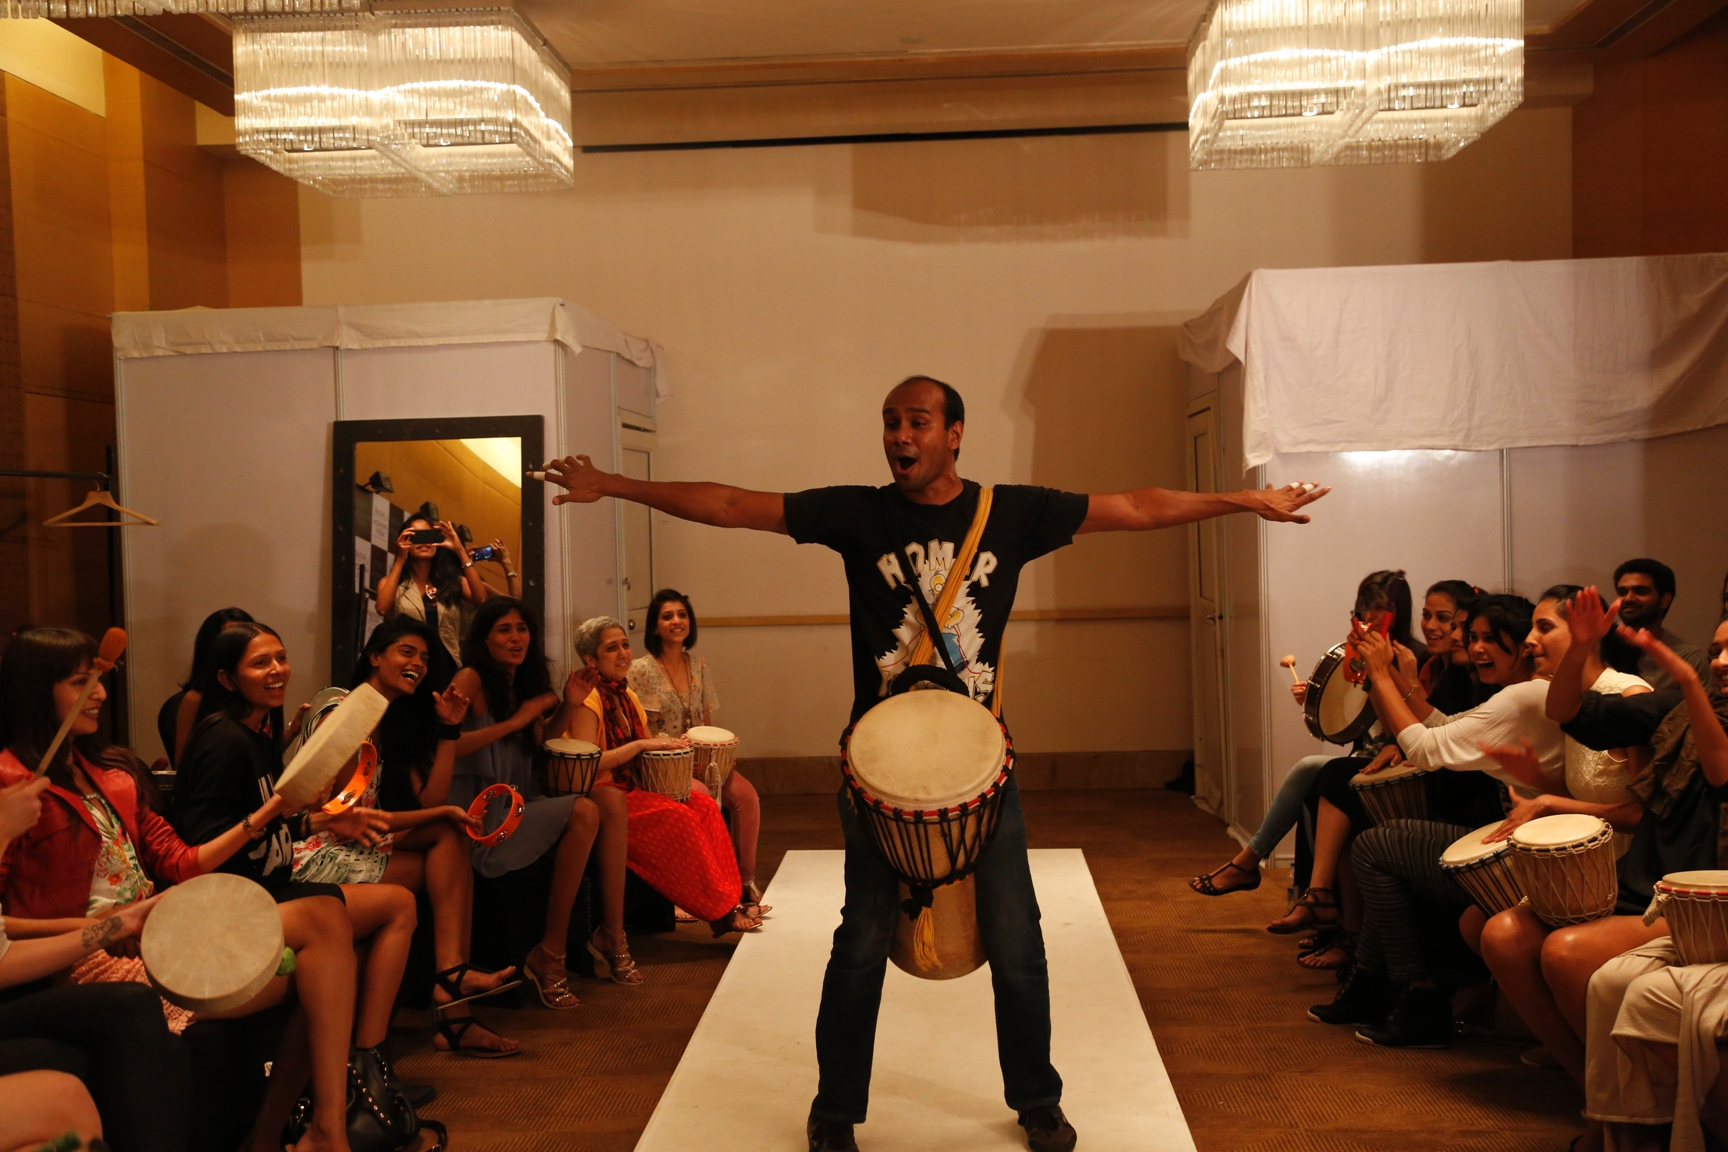 """Arthur Fernandes, a psychologist, Arts based therapist, Drum Circle facilitator and Founder of Music Matters made the day interesting for the women and men alike. He said, """"Music being a universal language, its a liberating mode of communication. Drums"""